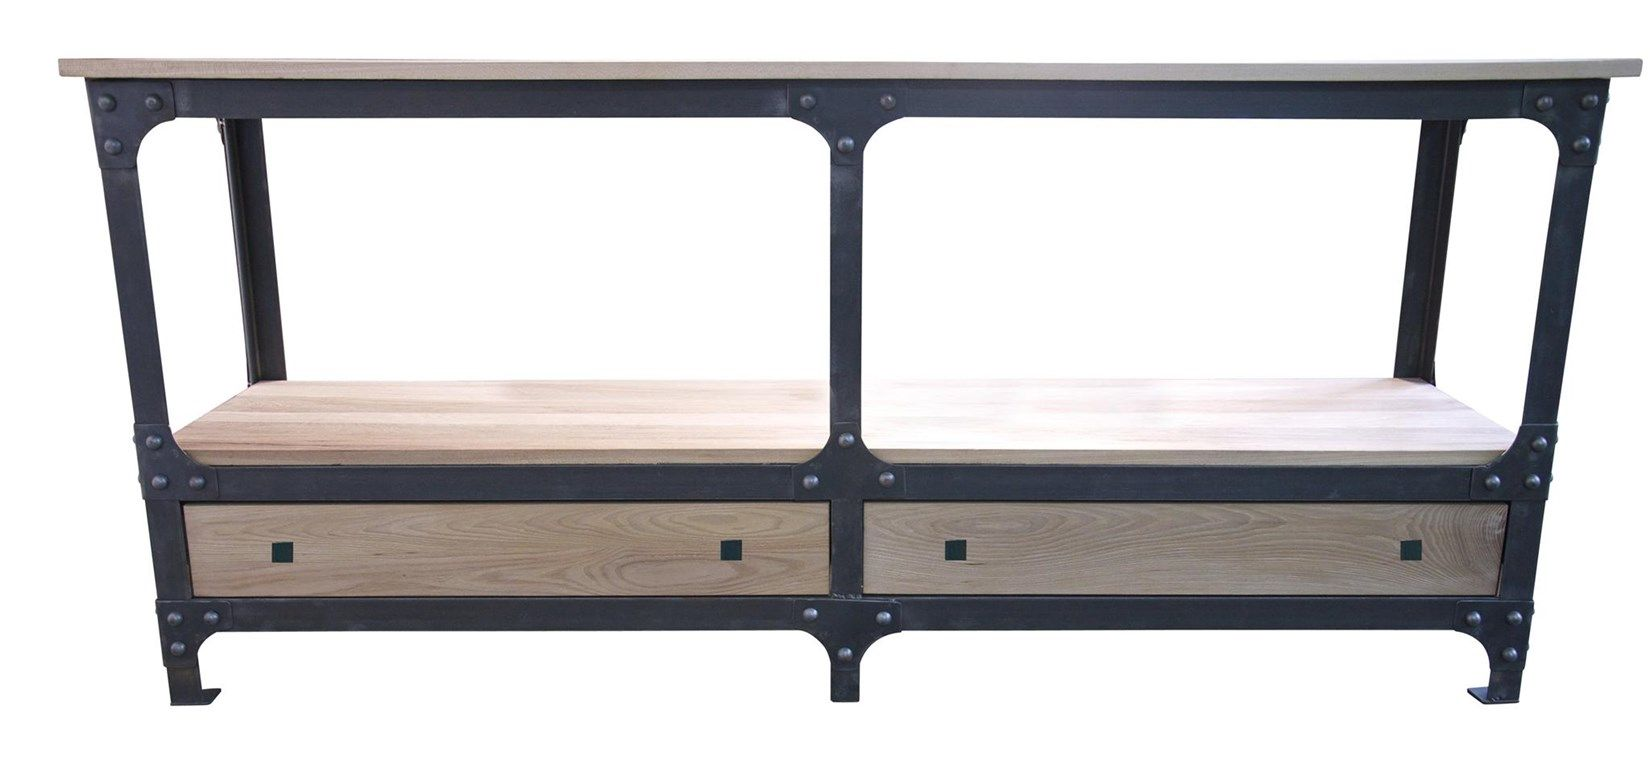 6 foot console table - Gcon502n Metal Wood Hudson Console Table W 72 D 20 H 32 6foot